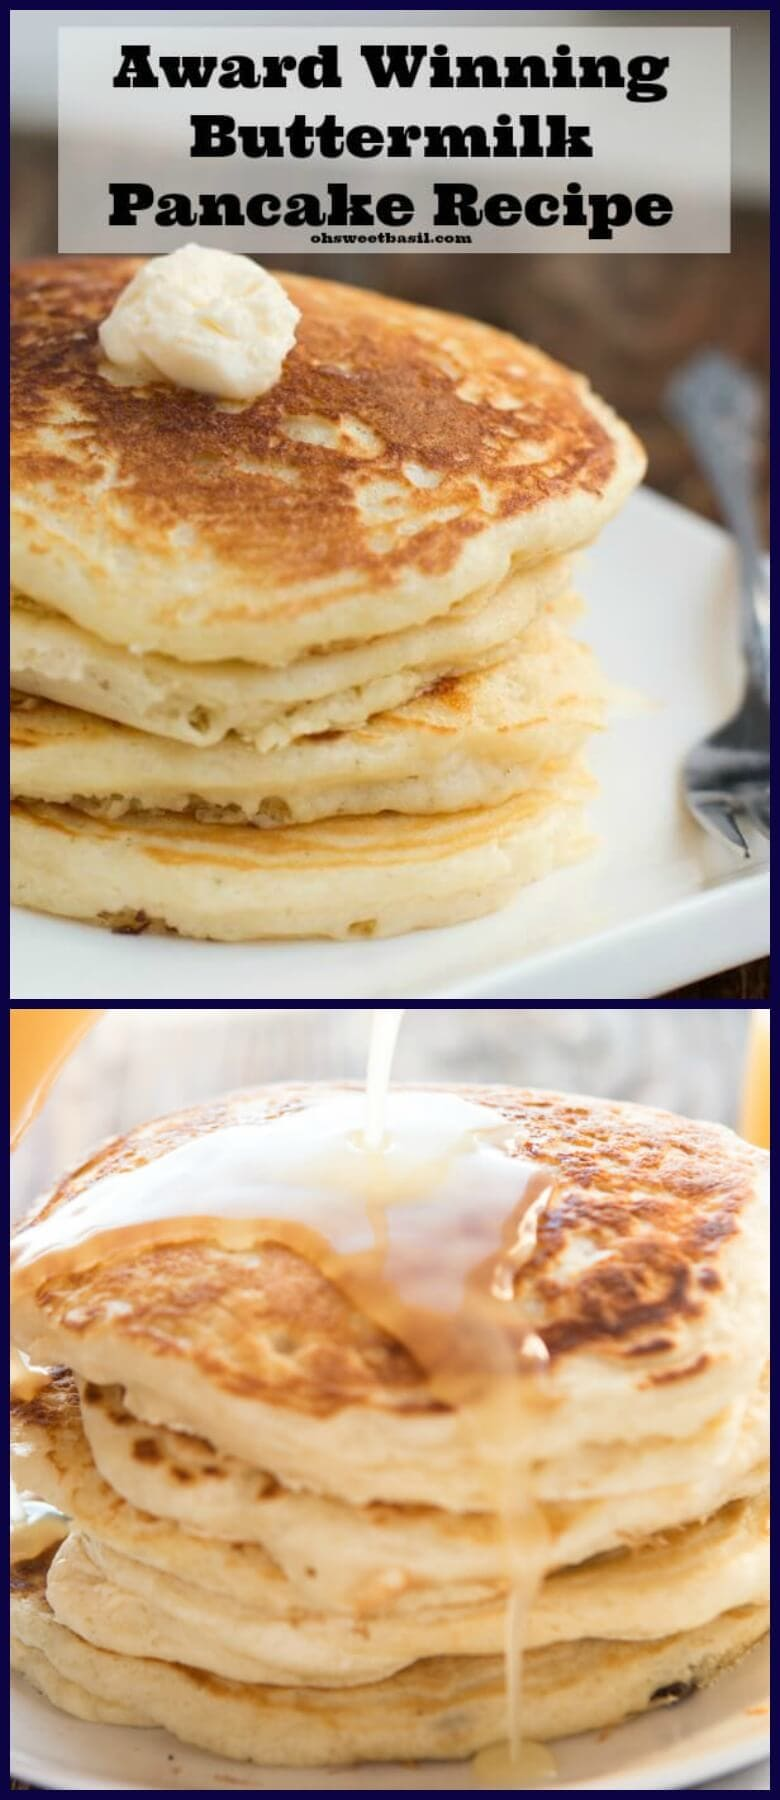 The absolute best recipe (after testing hundreds) for buttermilk pancakes. In fact, these are melt in your mouth buttermilk pancakes!